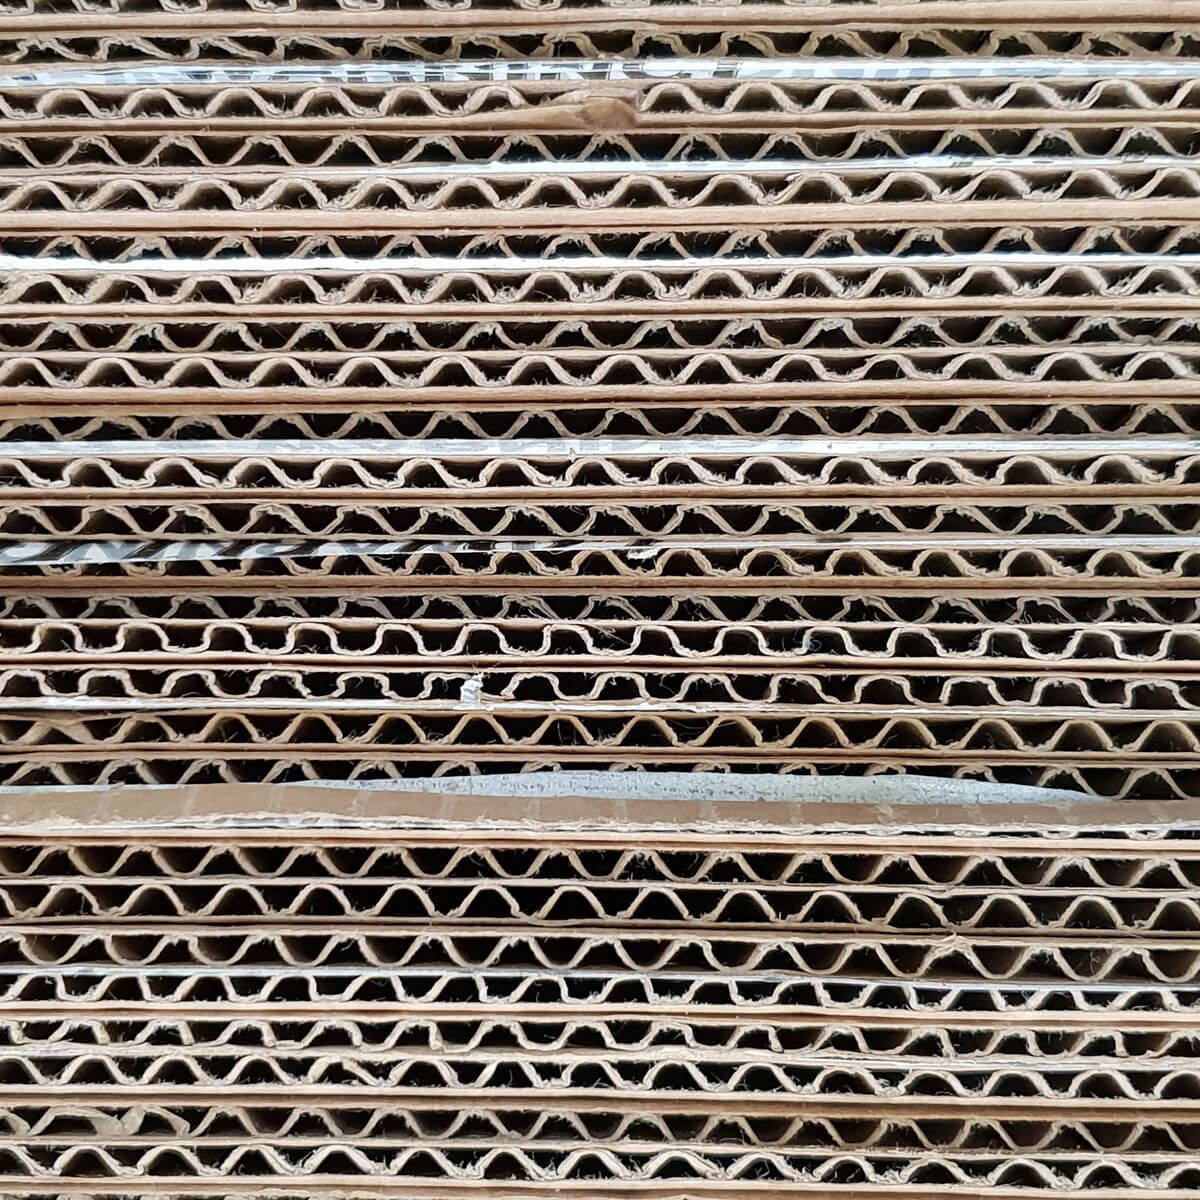 stacked layers of corrugated cardboard